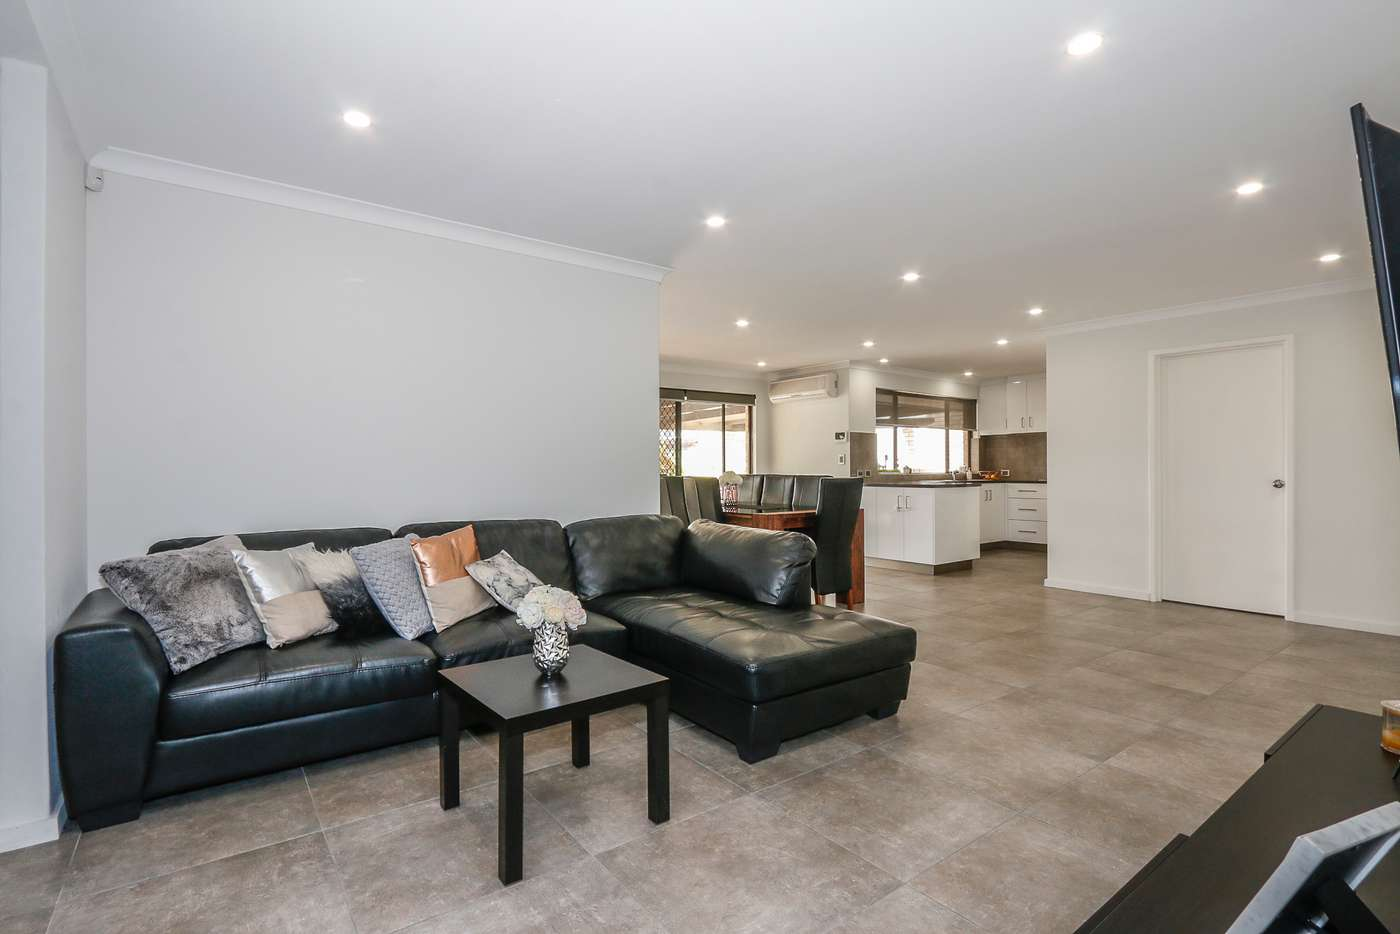 Seventh view of Homely house listing, 3 ROSEATE COURT, Ballajura WA 6066